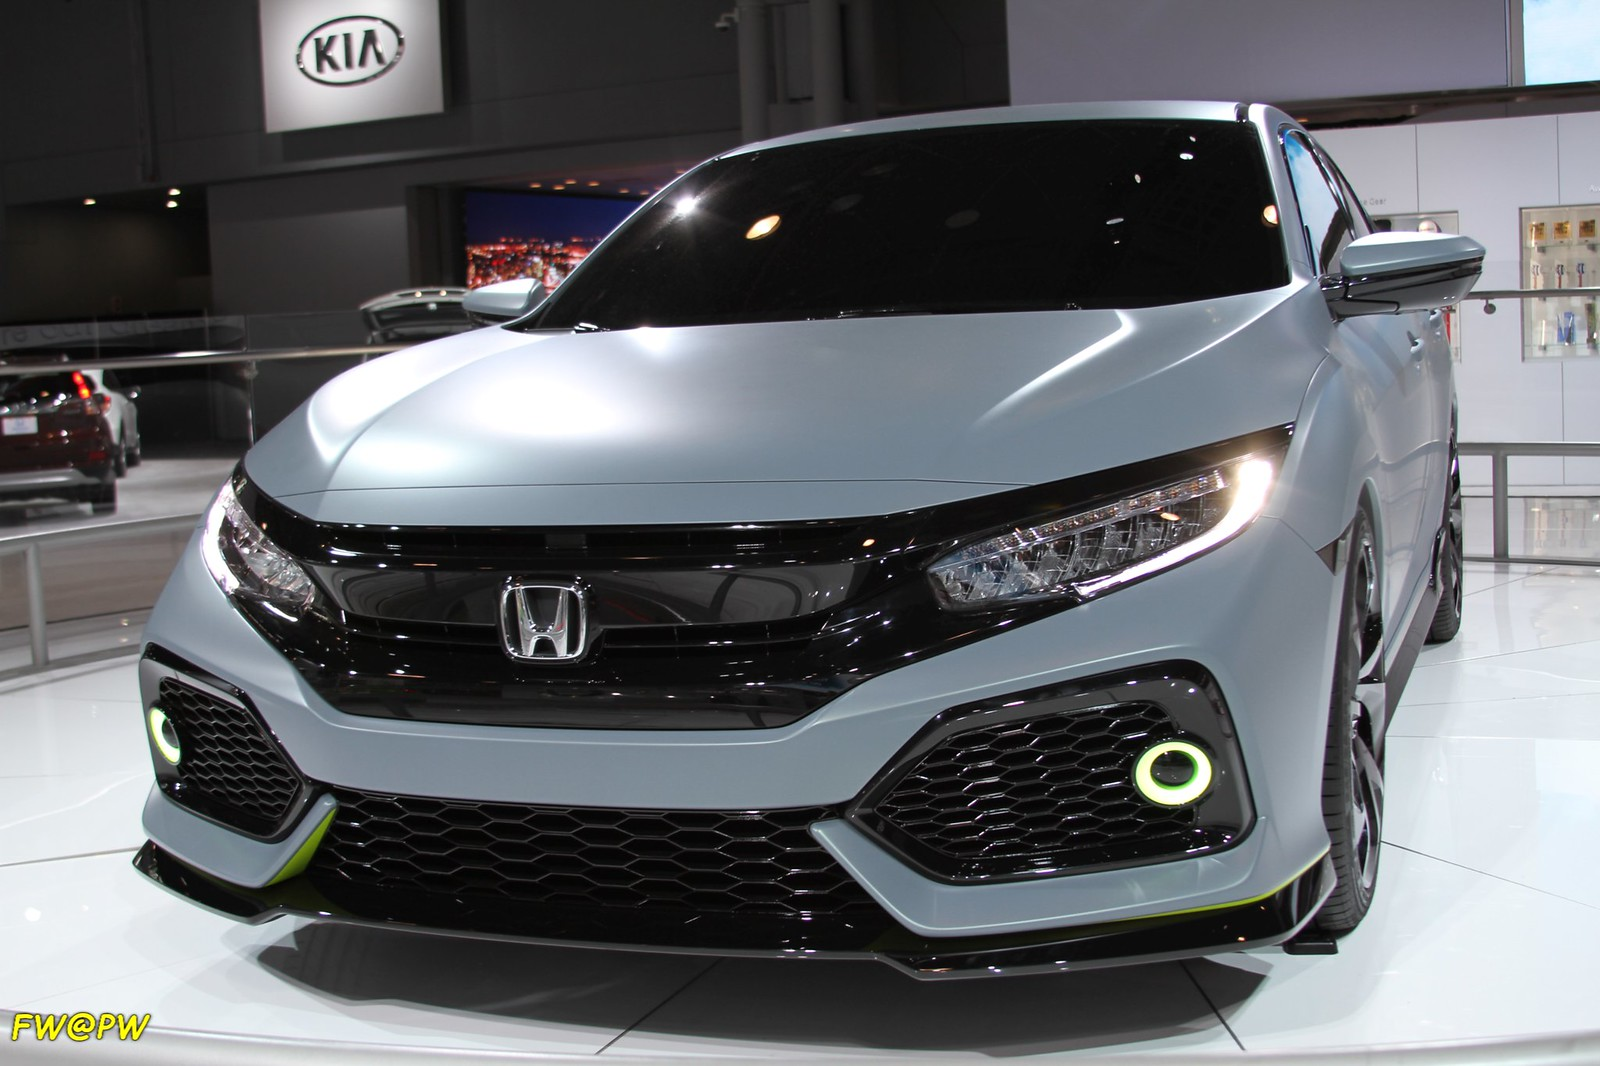 10th Generation Civic Exclusive Pakistan Launch - 25785037630 2aaa5c3c6e h